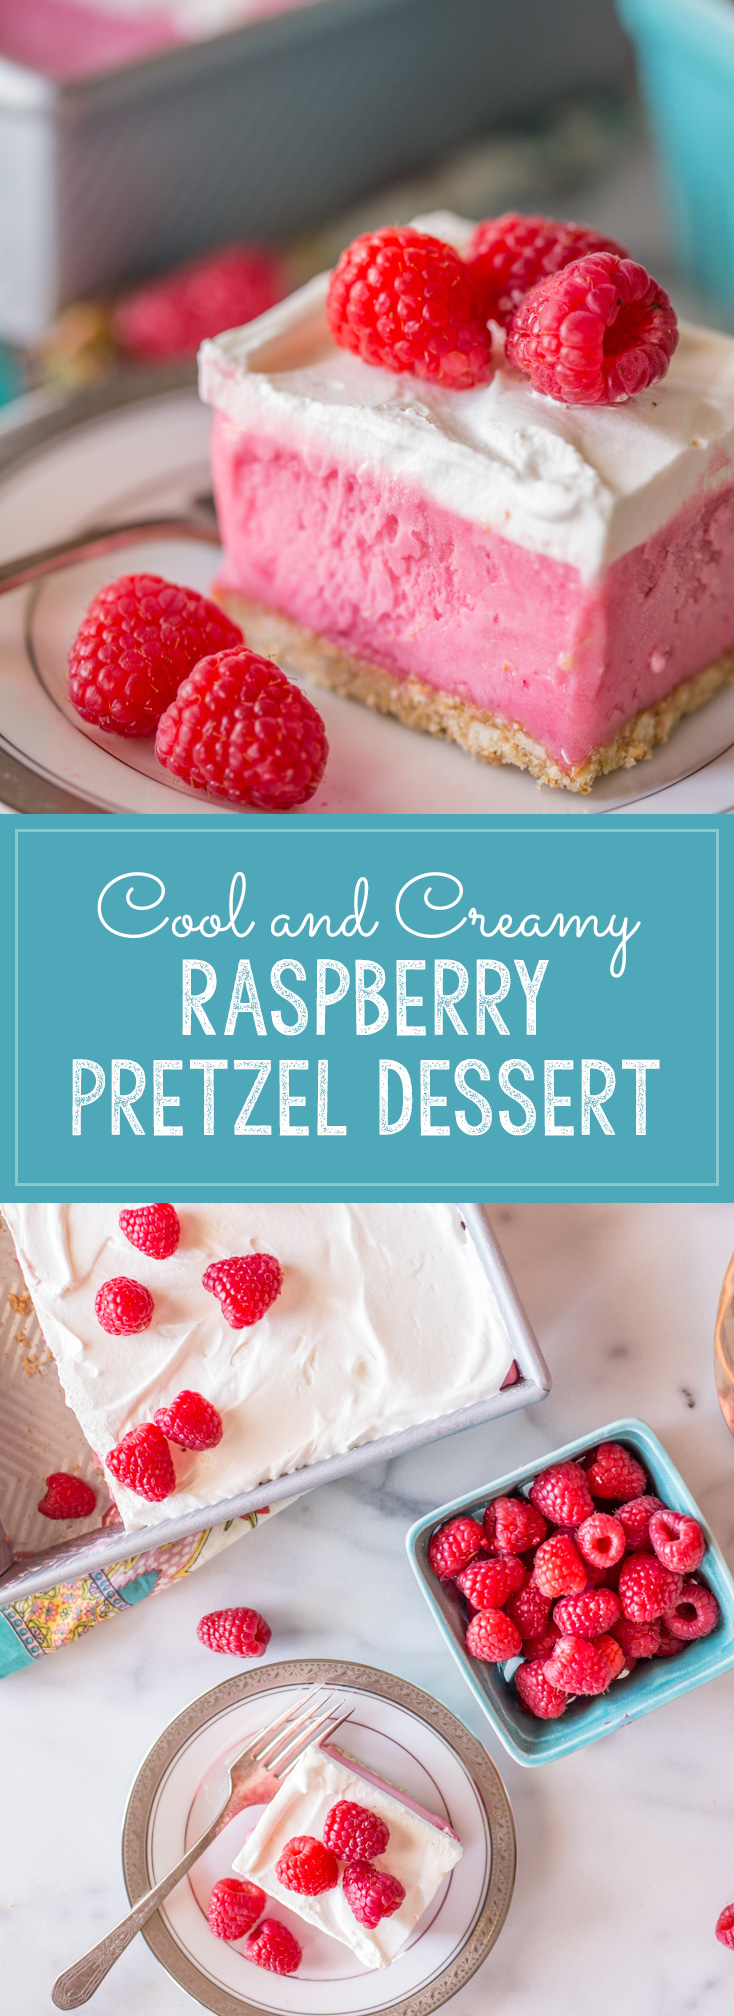 A gorgeous raspberry sherbet dessert with a pretzel crust and a homemade whipped topping! Perfect for summertime get togethers!